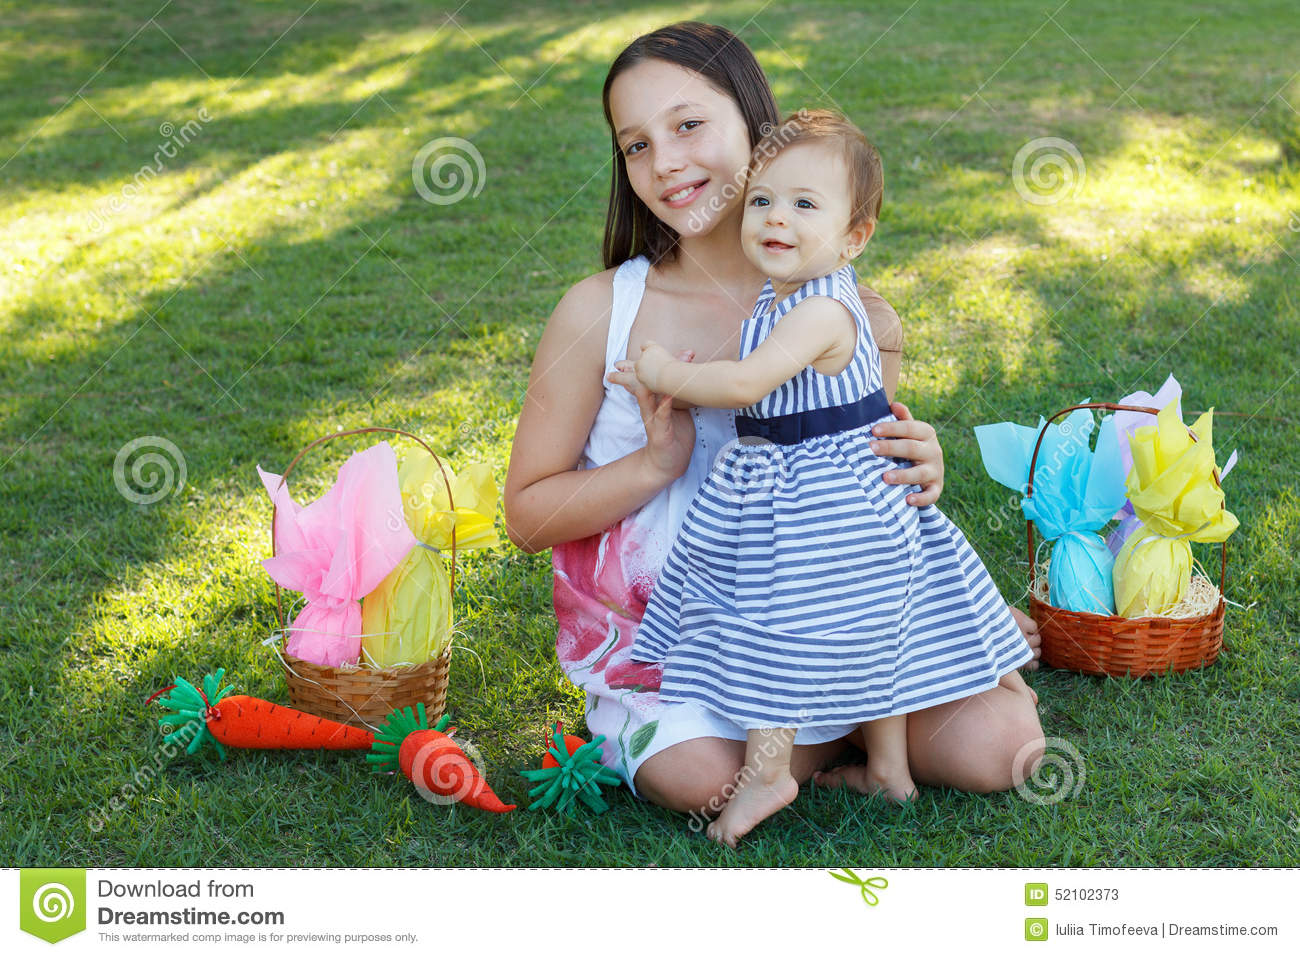 green park catholic girl personals Find school girl uniform stock images in hd and millions of  catholic school girl having fun wearing  schoolgirl with bag sitting on bench in green park.